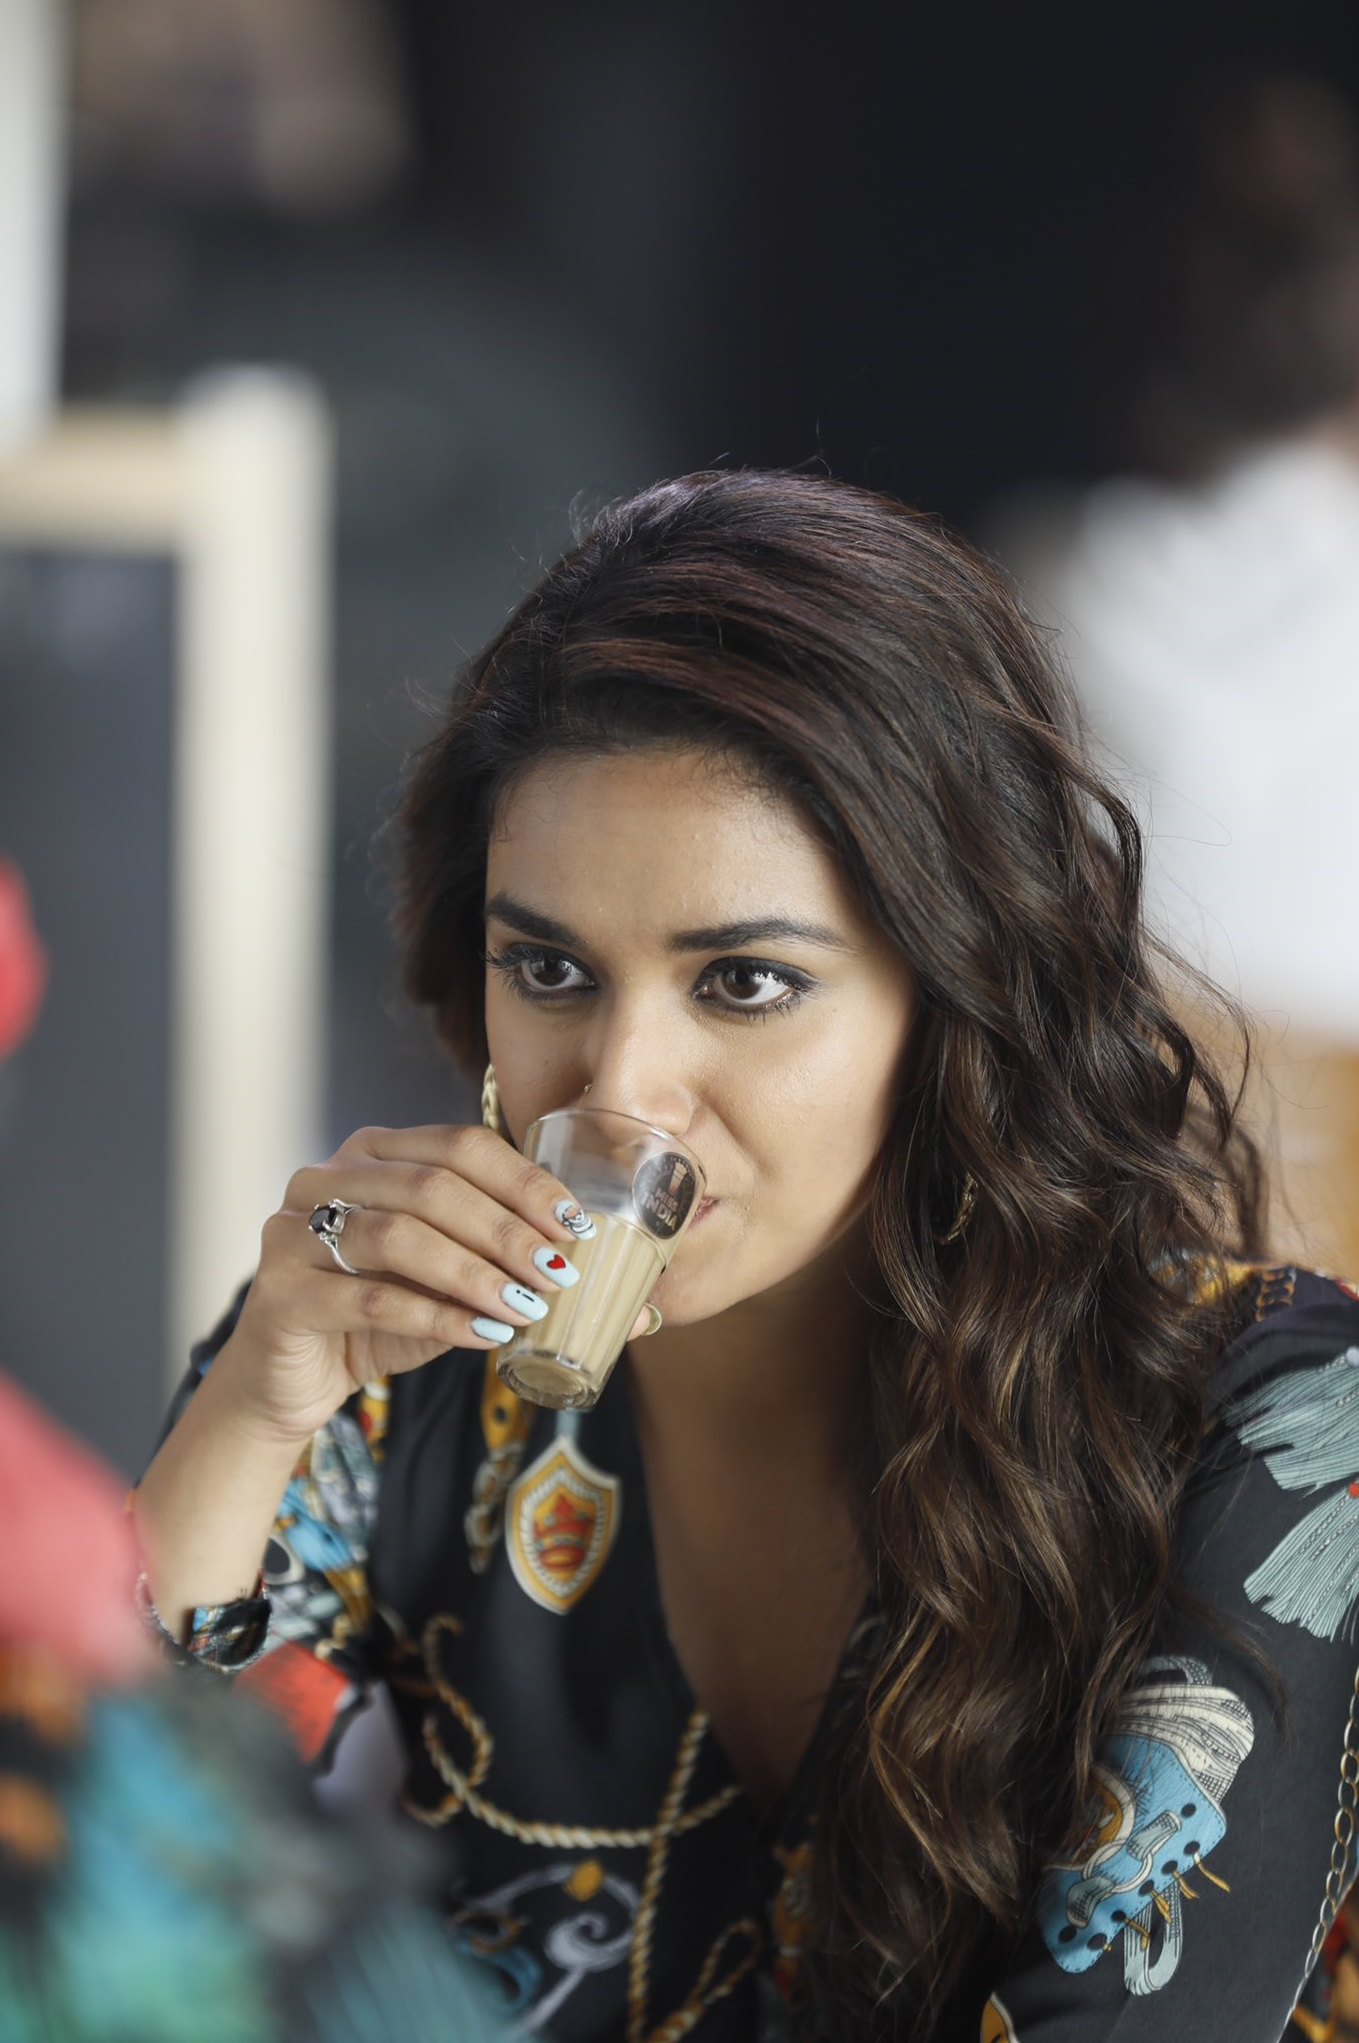 Keerthy Suresh Awesome Lovely Expressions While Drinking Tea